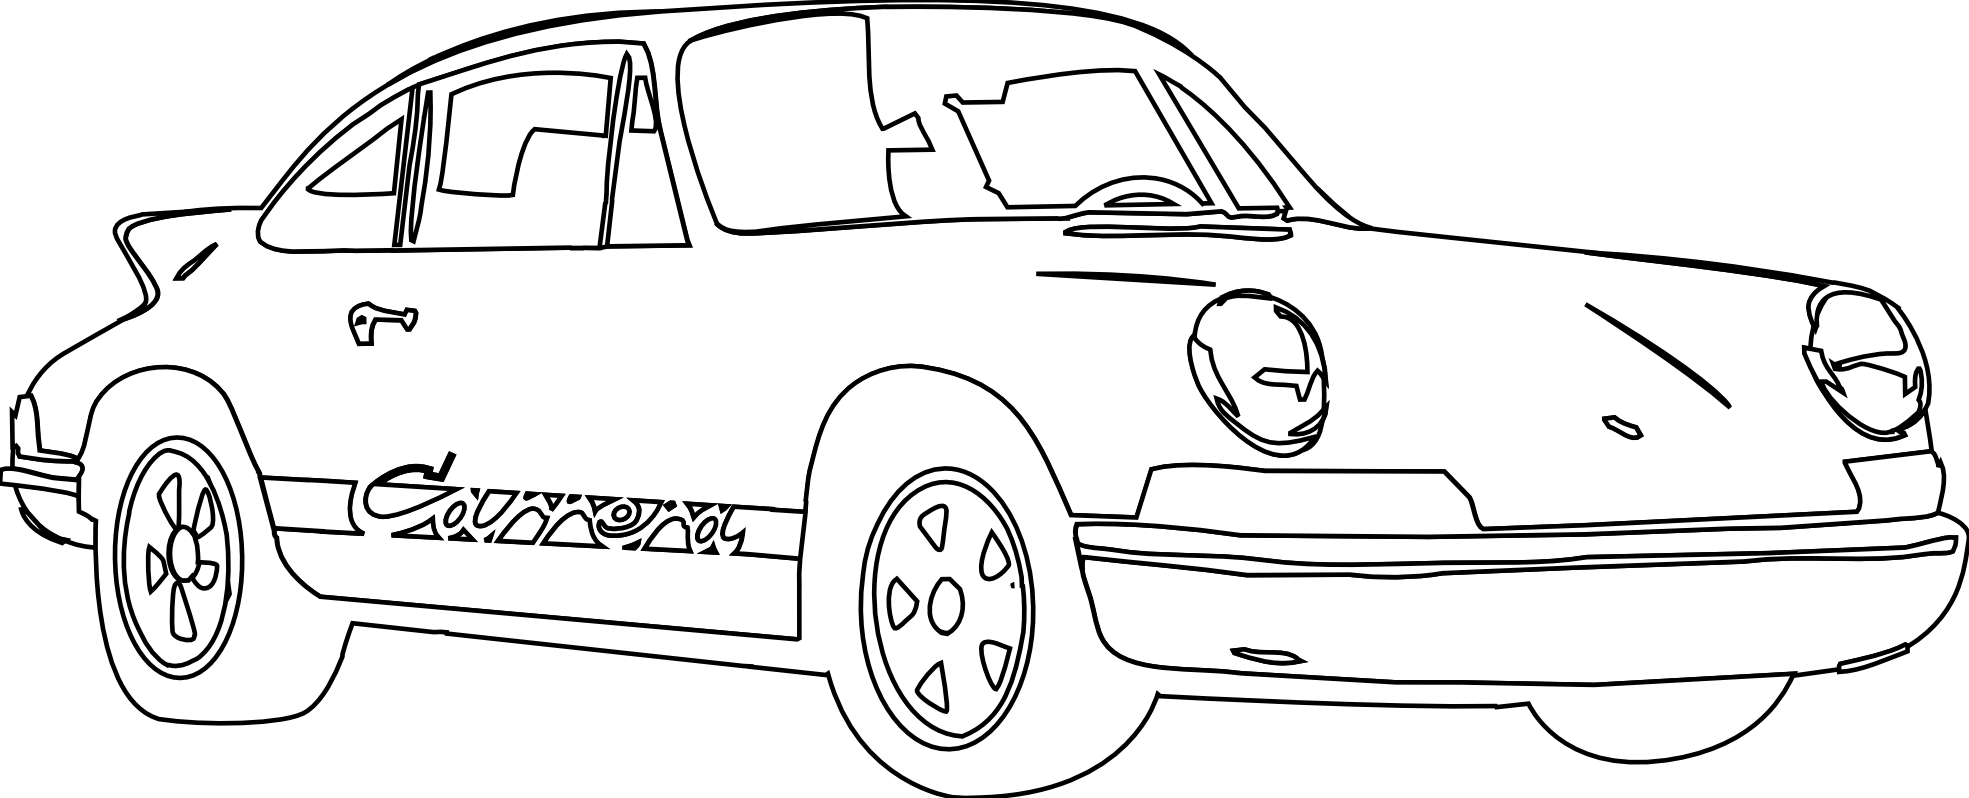 Porsche 911 Carrera White October 2011 openclipart.org commons.